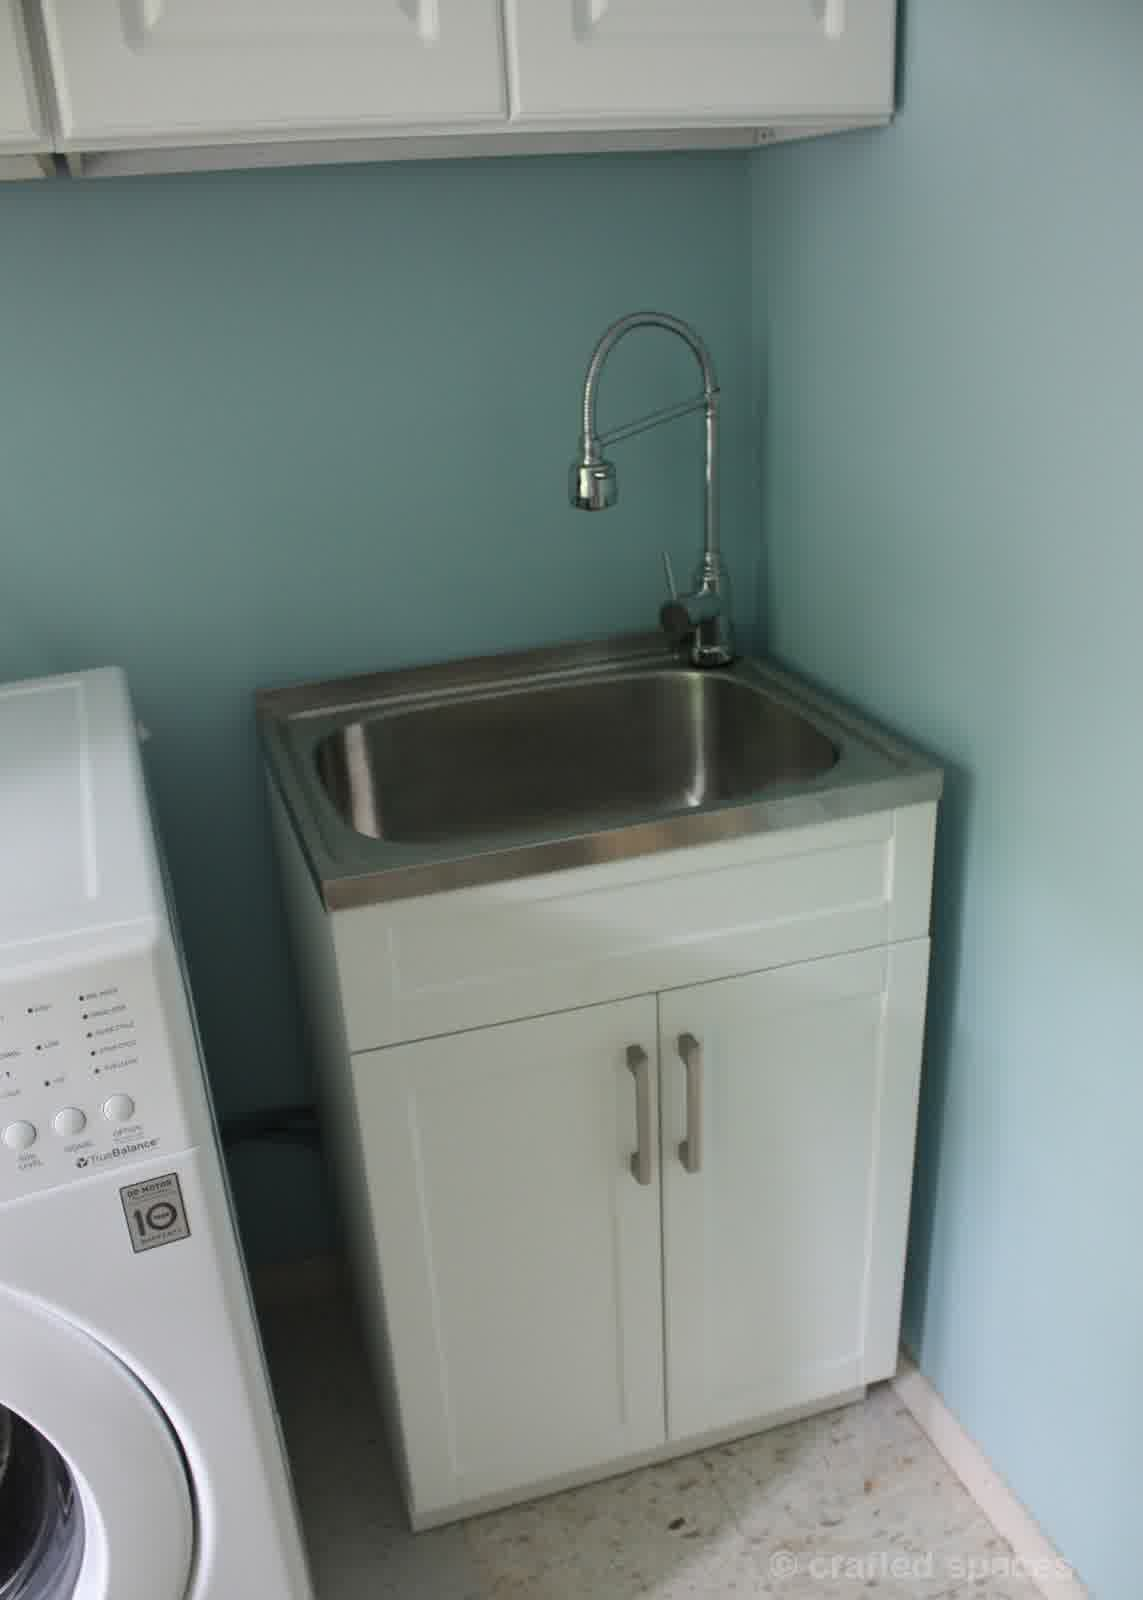 Pin By Rahayu12 On Interior Analogi In 2019 Laundry Room Sink